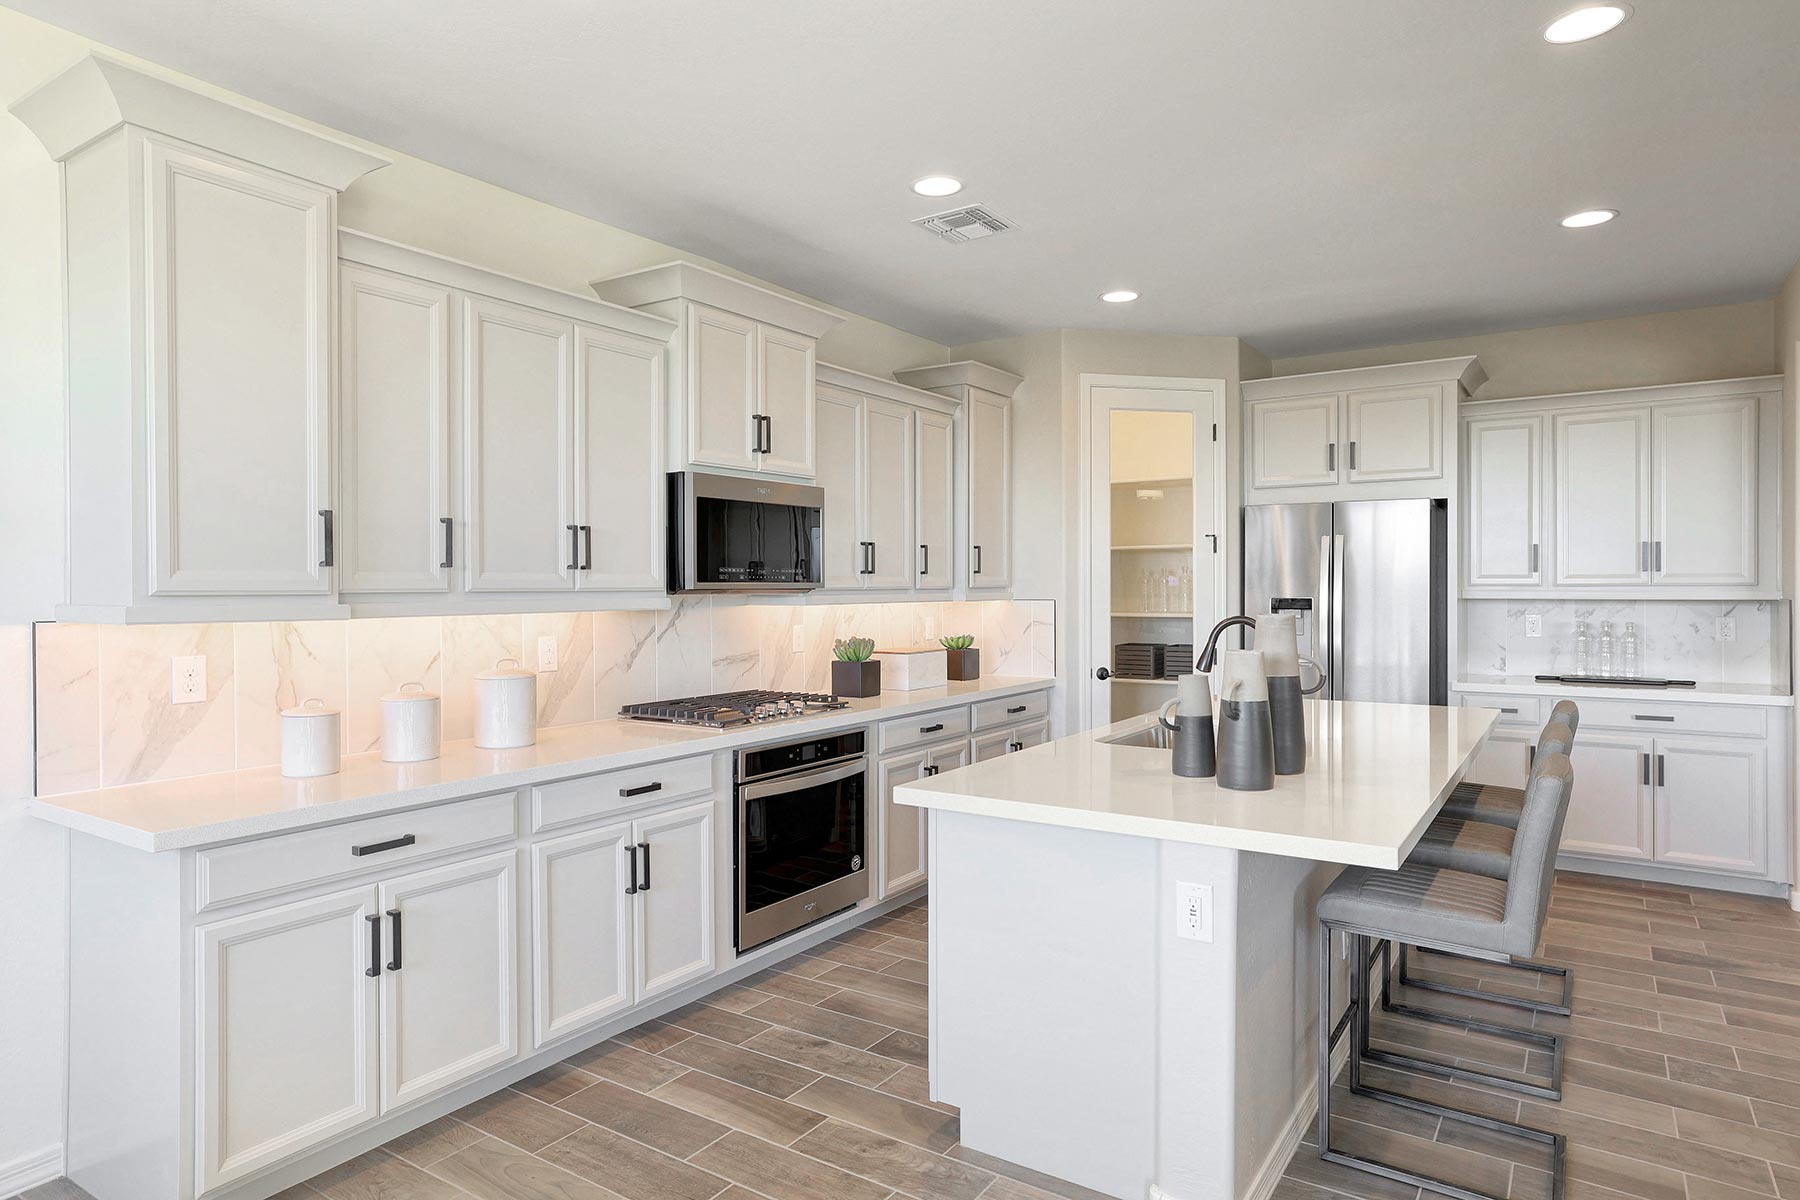 Bellwood Plan Kitchen at Azure Canyon in Goodyear Arizona by Mattamy Homes